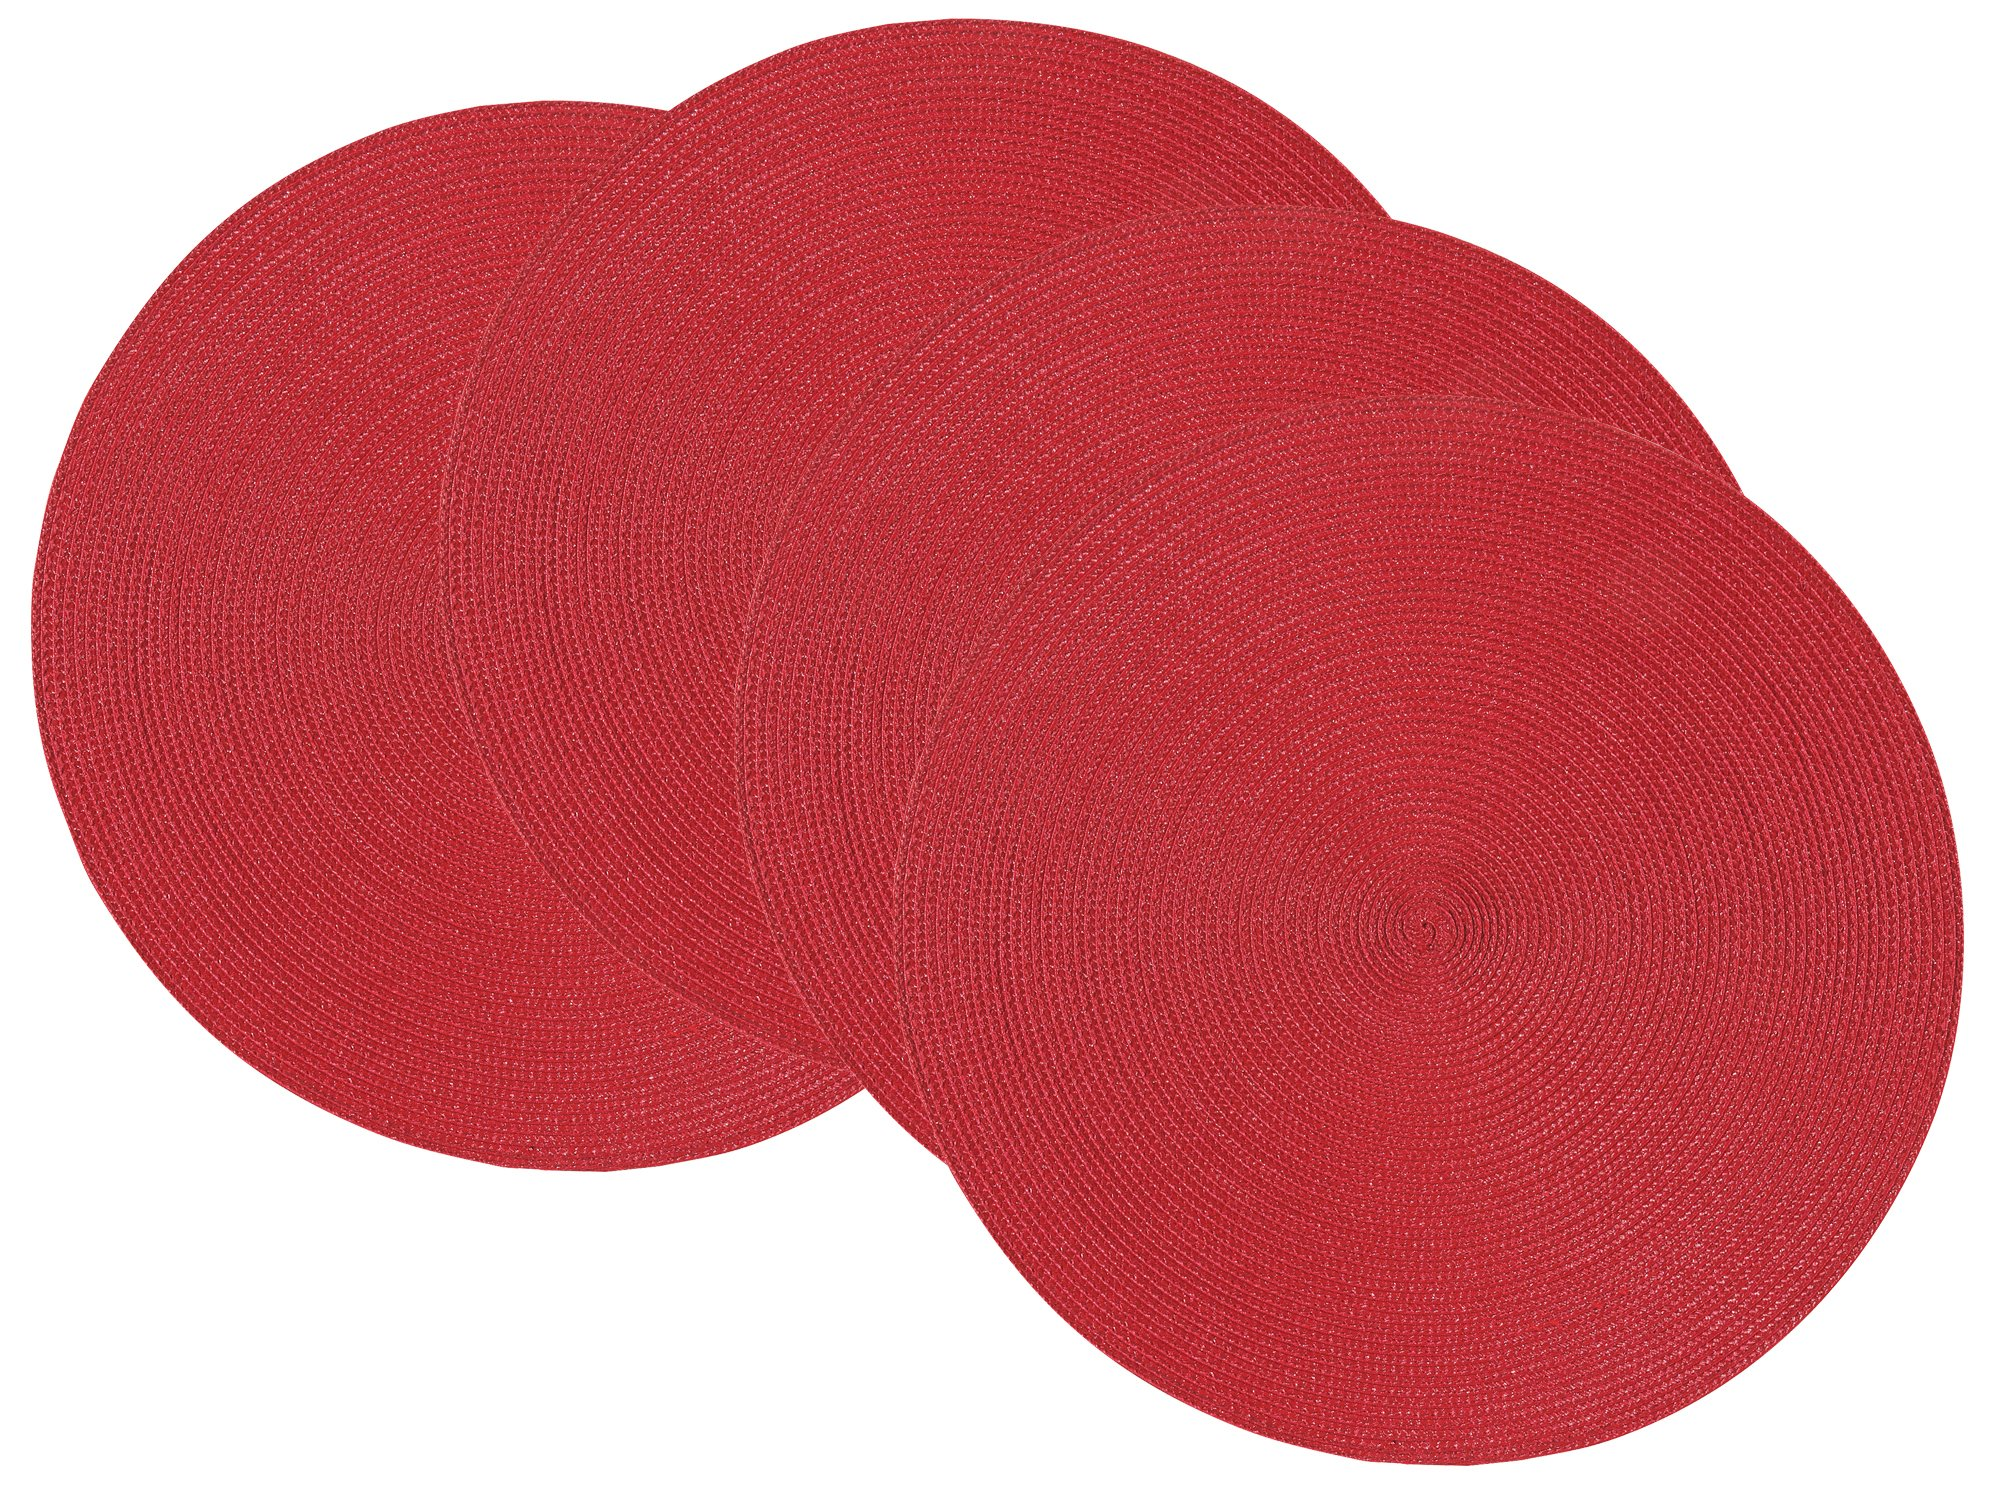 Now Designs Disko Round Placemats, Set of Four, Chili Red